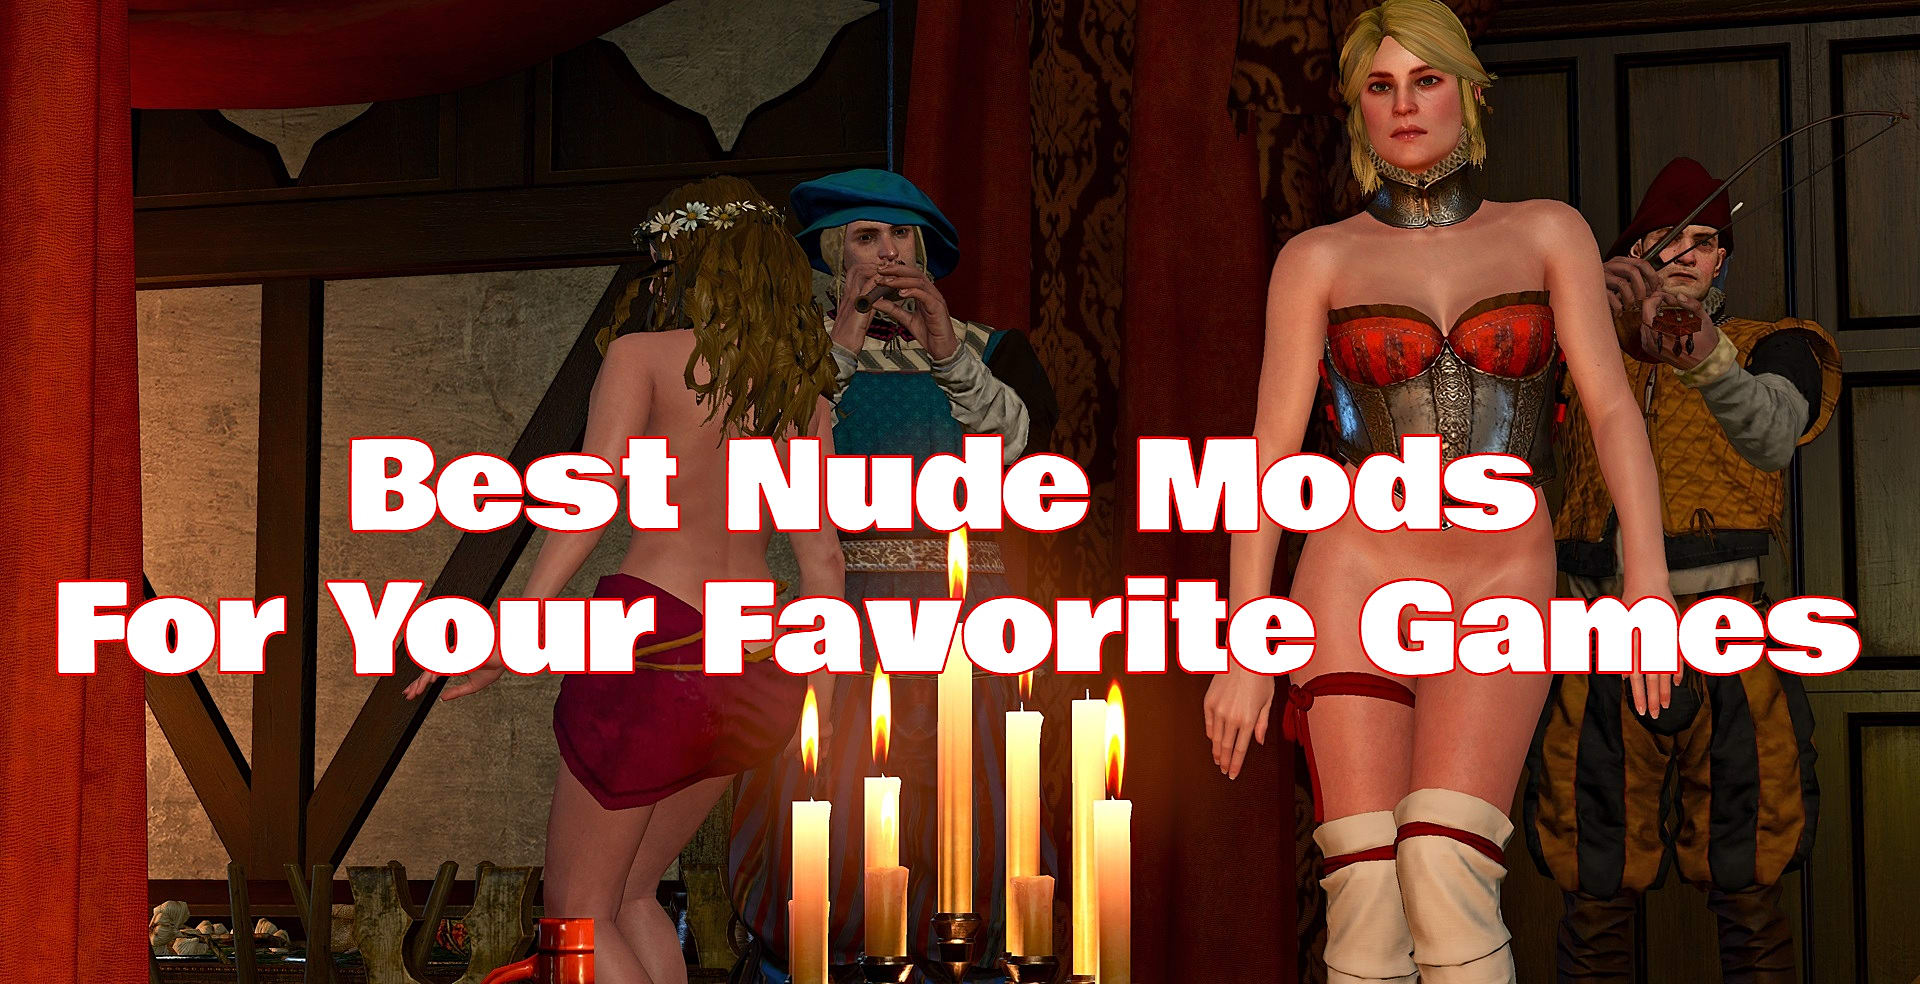 Modding games to have porn in it